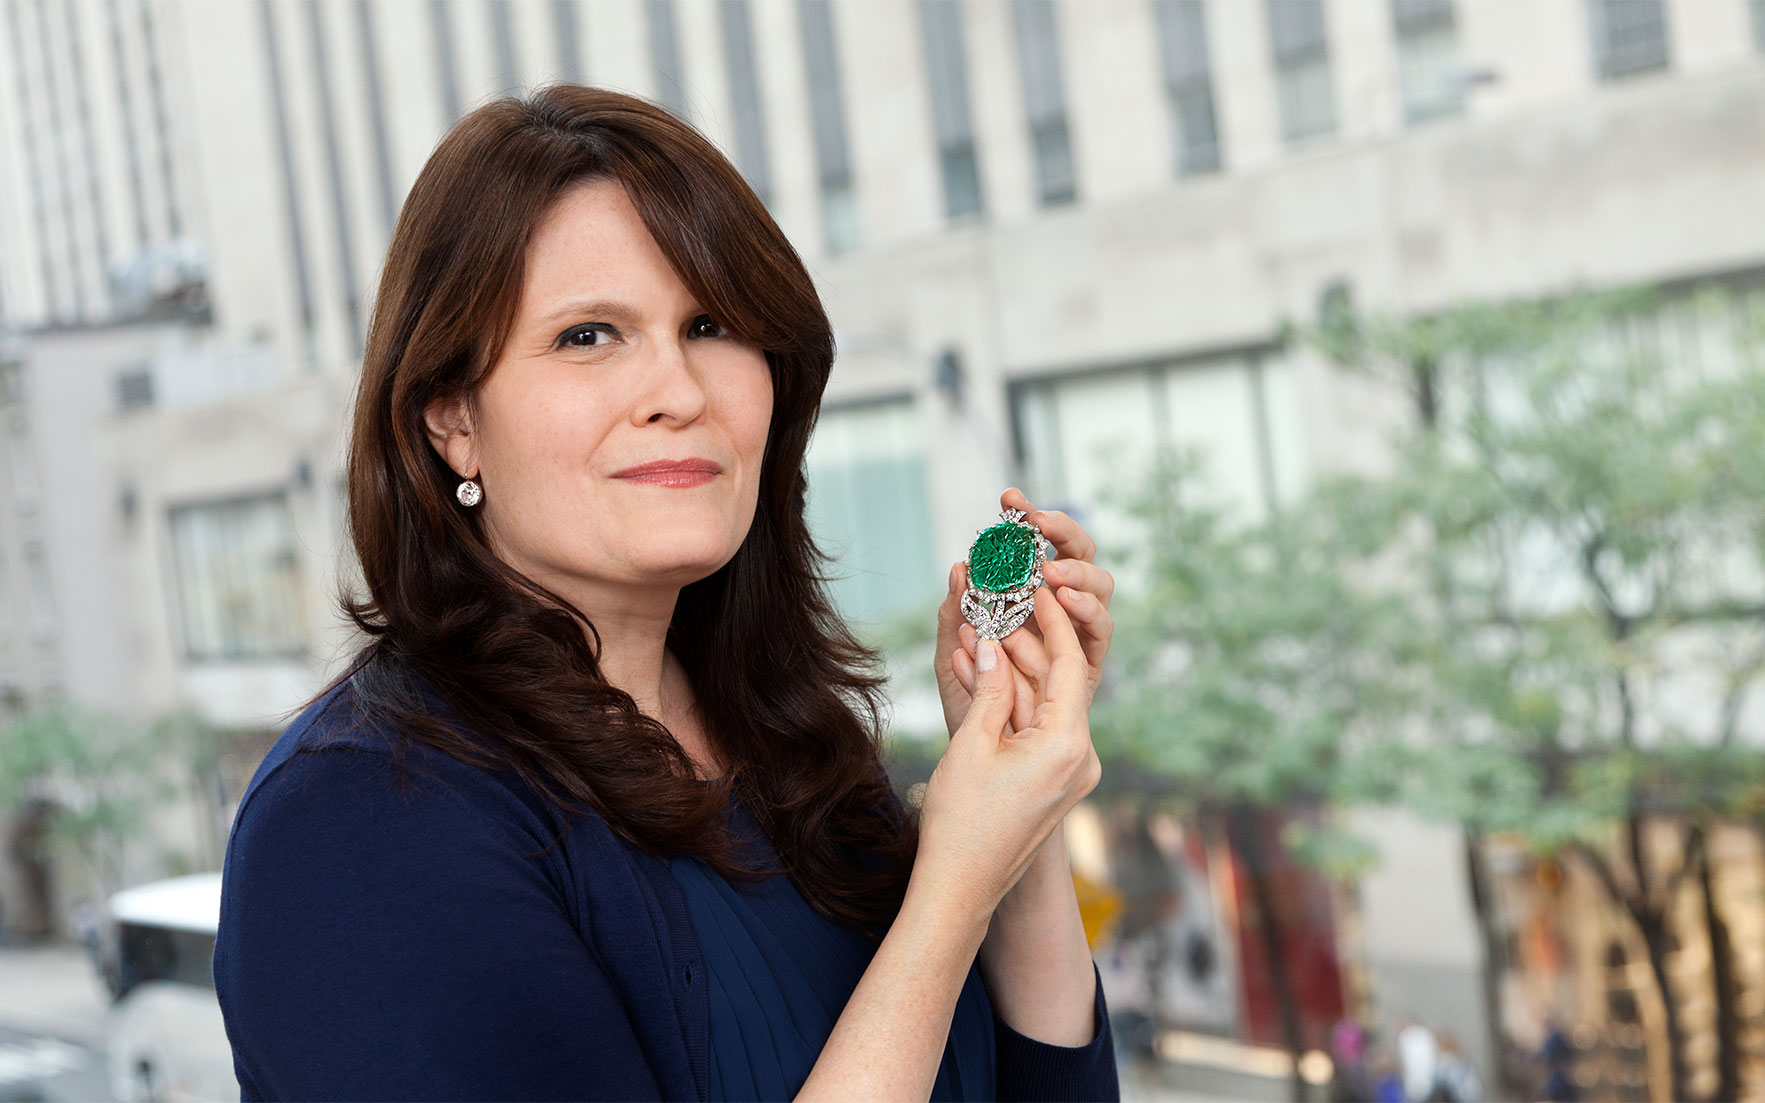 5 minutes with… A Cartier emerald brooch